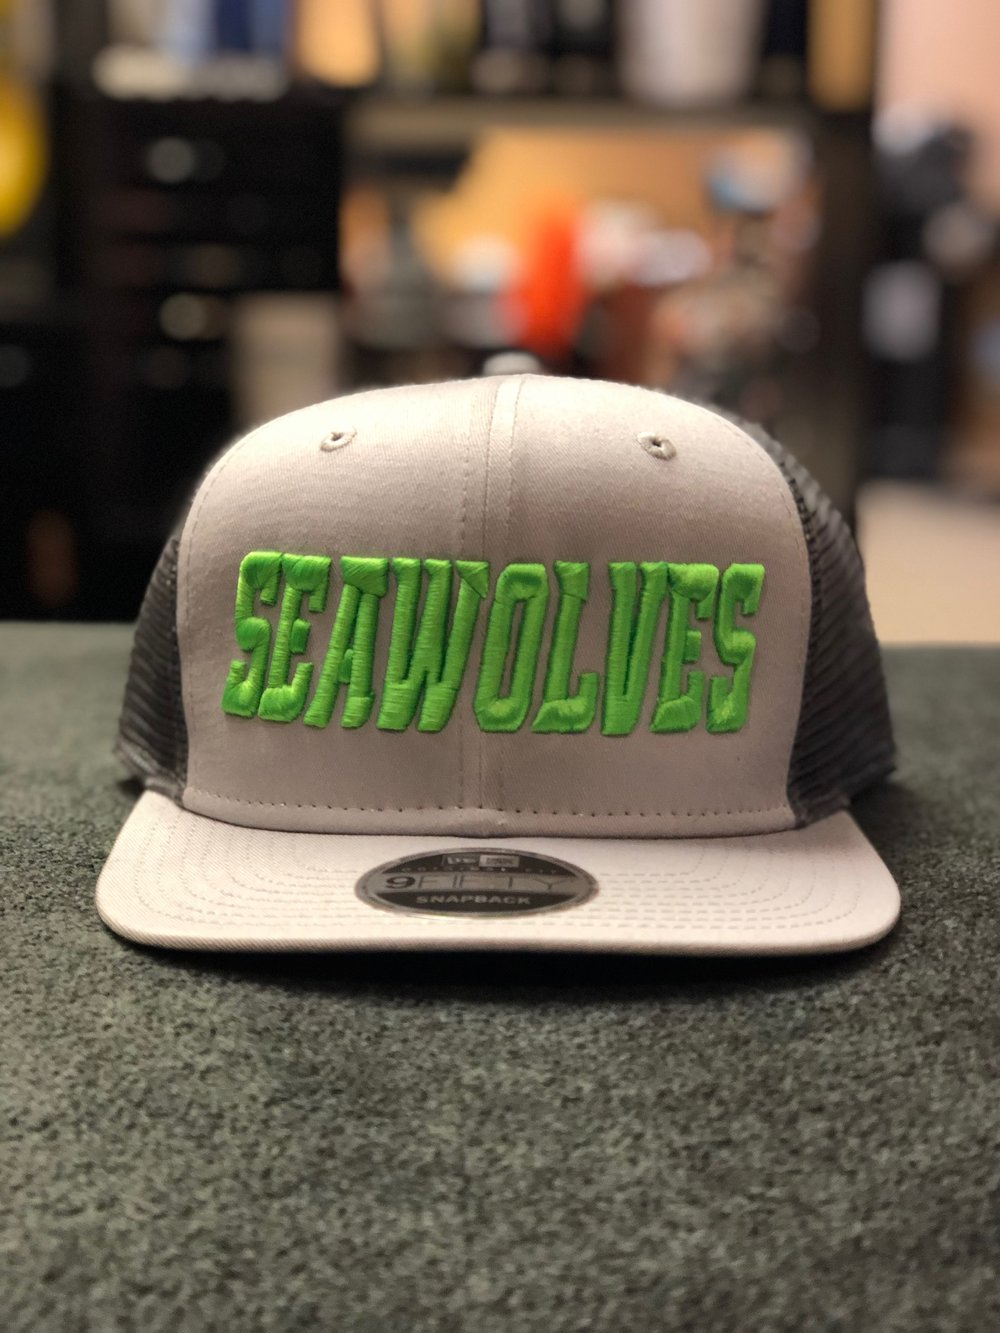 logounltd_laser_etching_embroidery_screen_printing_apparel_uniform_custom_tshirts_kirkland_bellevue_seattle_redmond_woodinville_branded_merchandise_promotional_products_logo_unltd_hats_seattle_seawolves (5).jpg